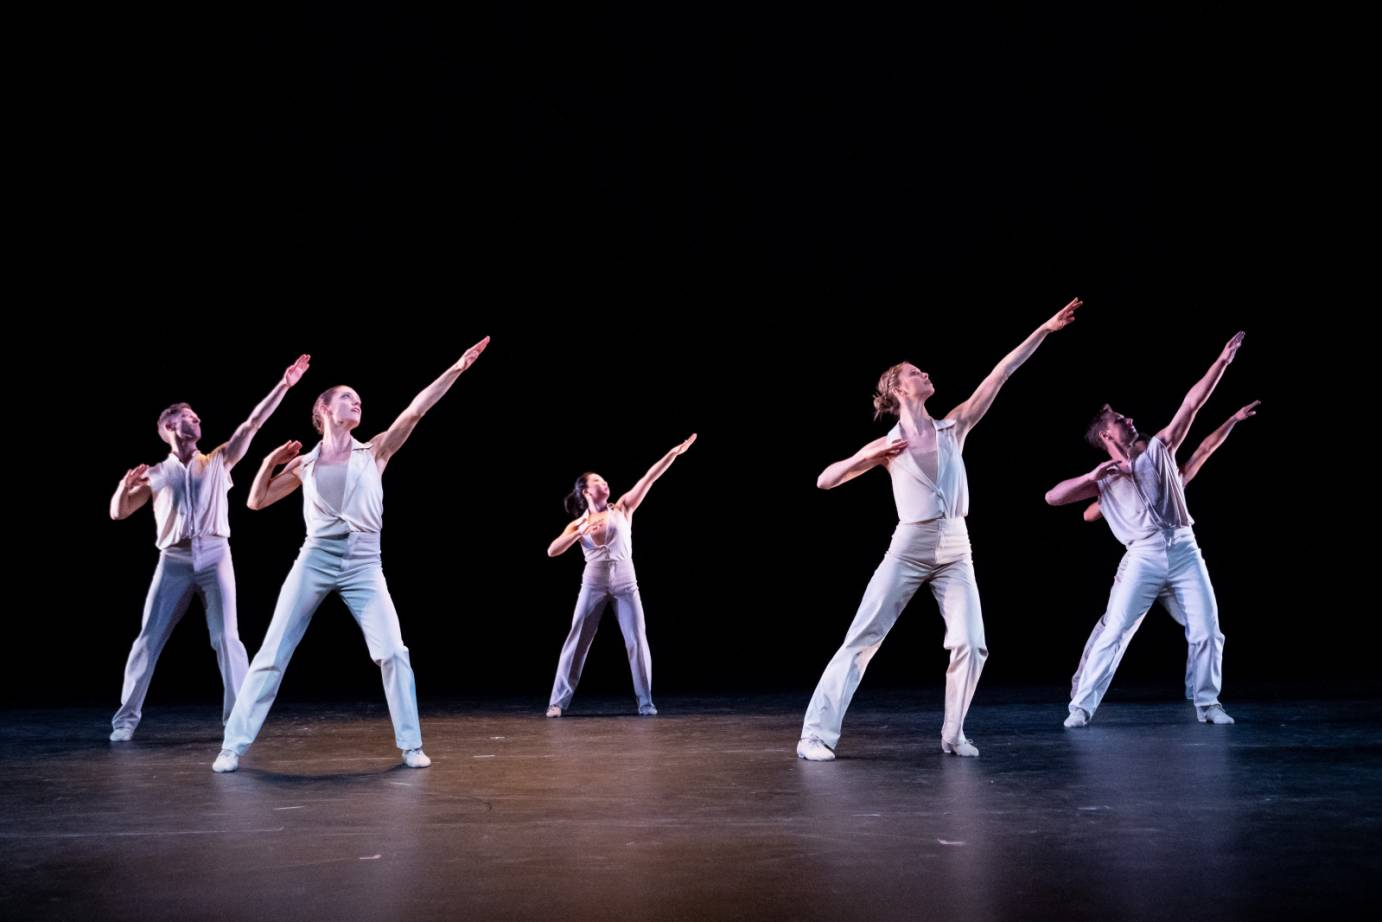 A group of dancers in white pants in tops stand in a wide stance. Their left arm is placed on a high diagonal while their right arm is bent at the elbow.